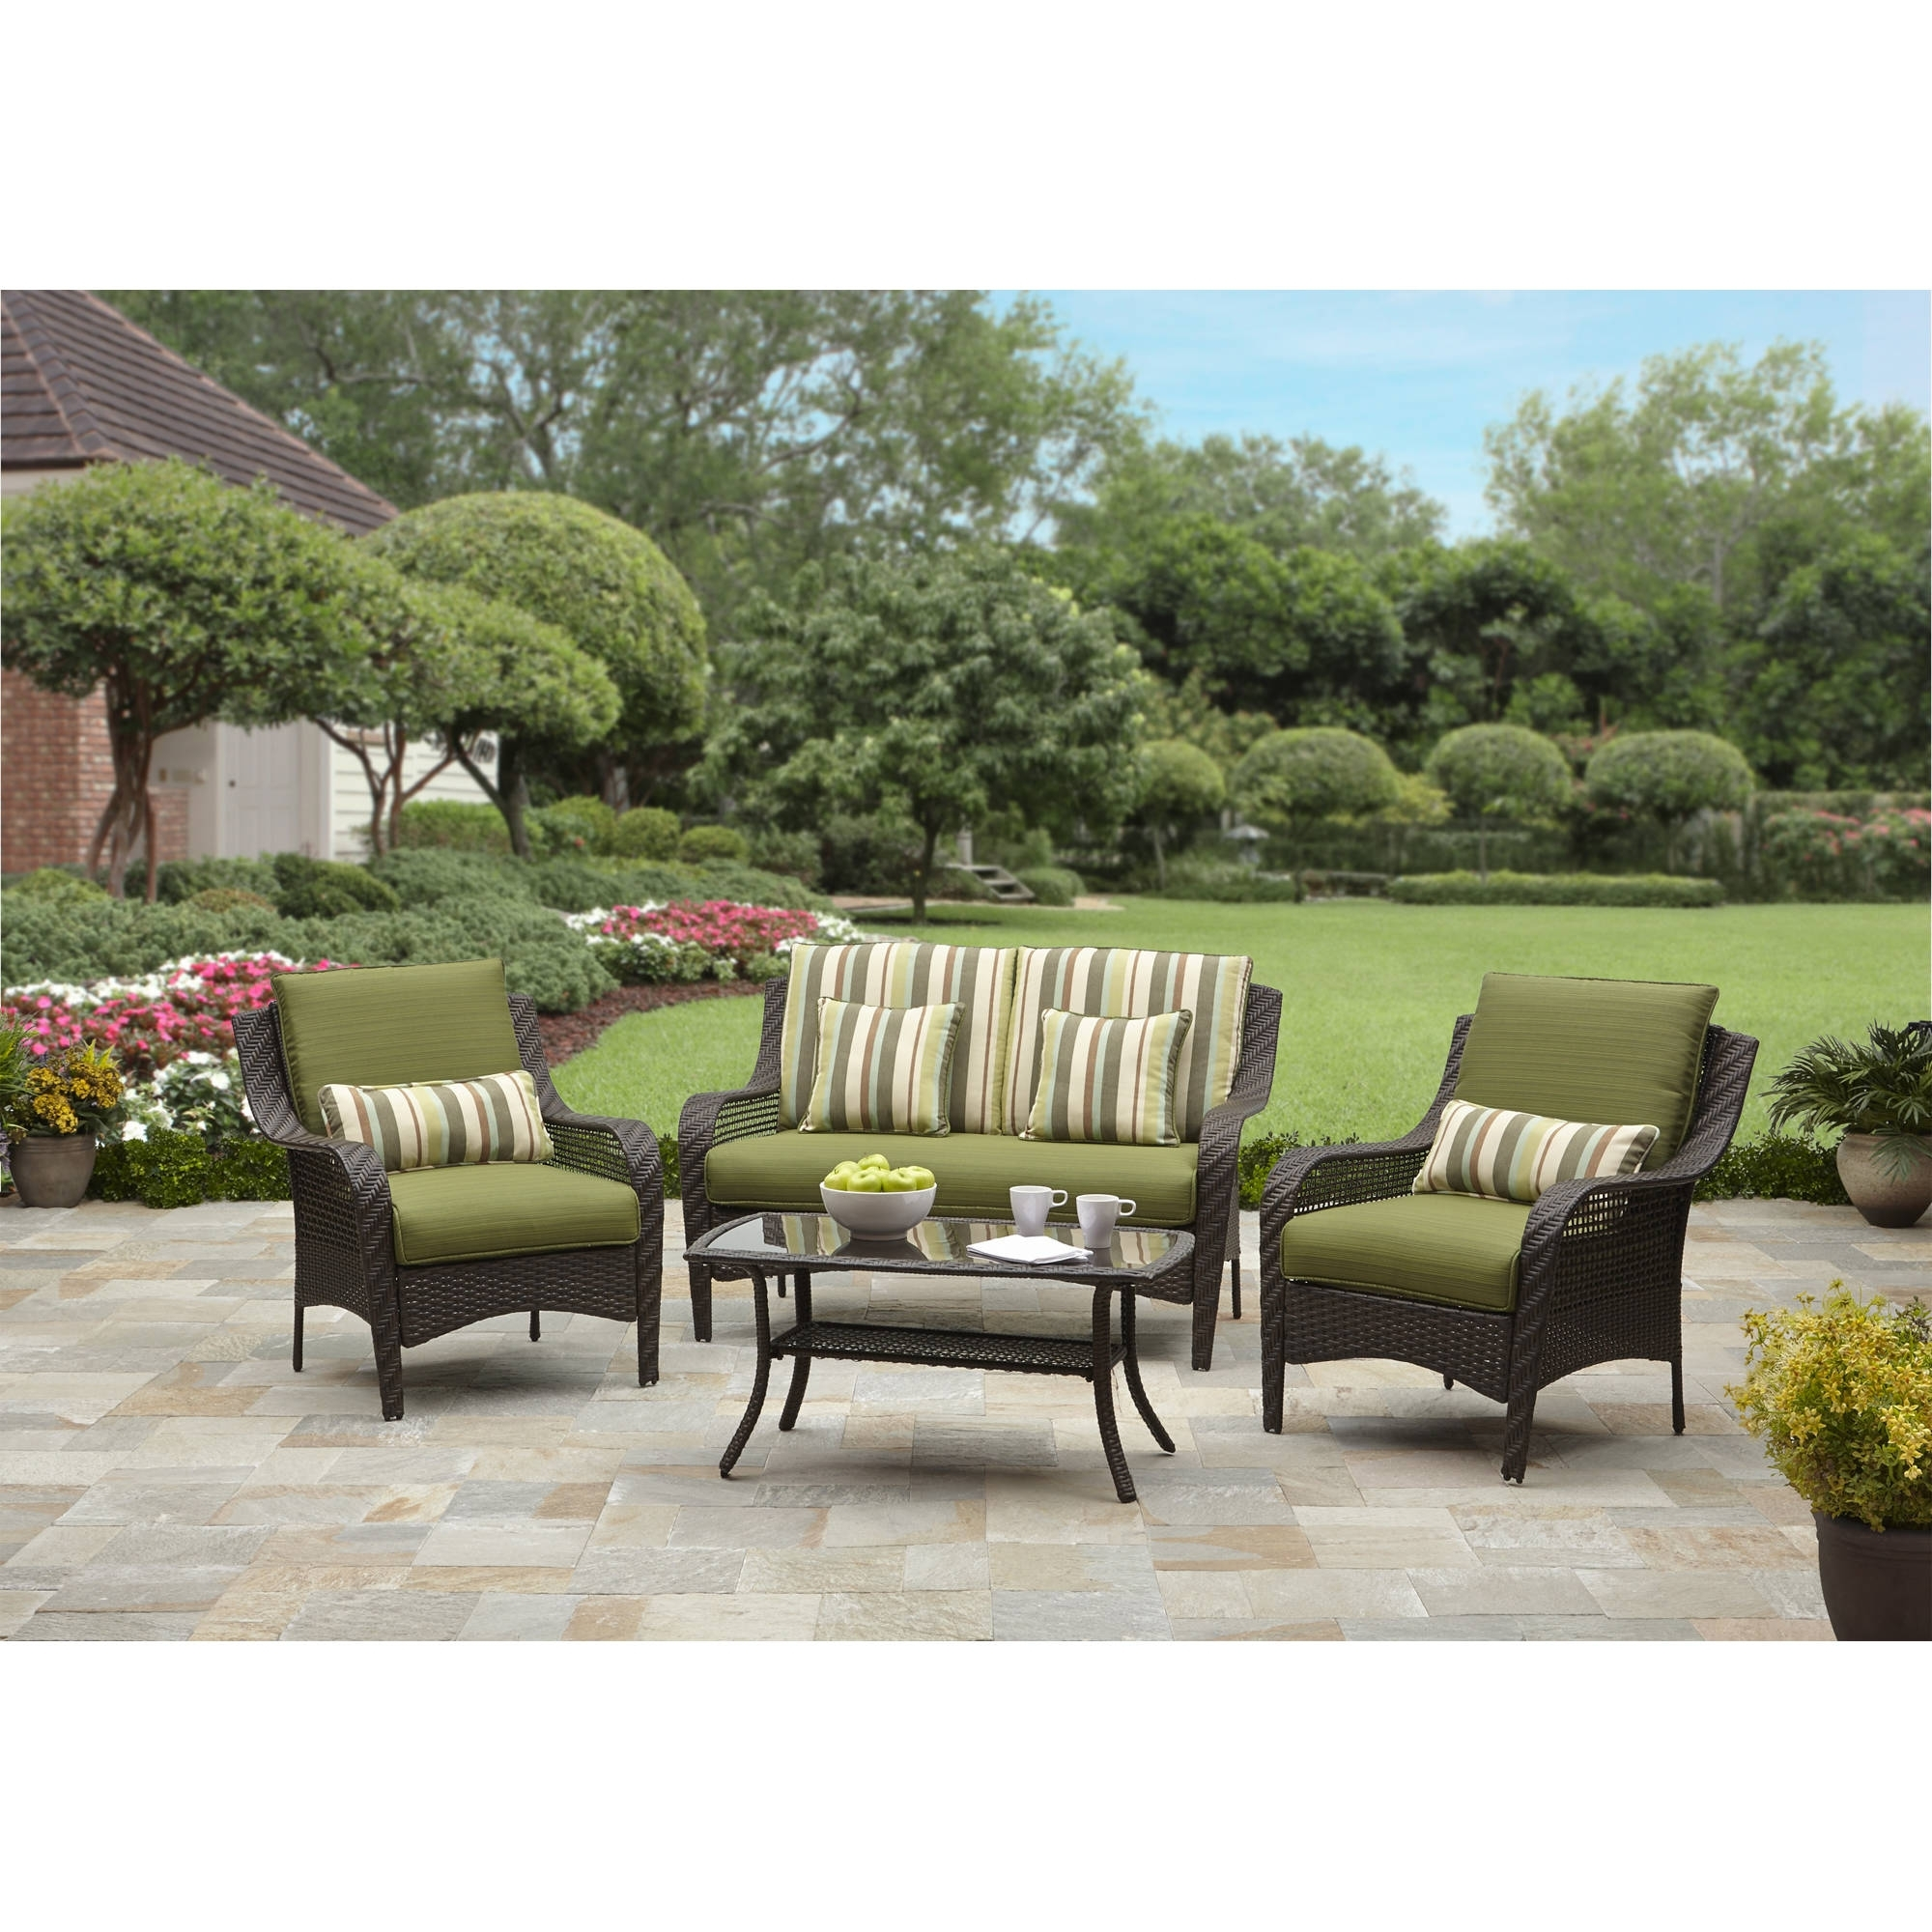 Better Homes And Gardens Amelia Cove 4 Piece Woven Patio With Preferred Walmart Patio Furniture Conversation Sets (View 3 of 15)